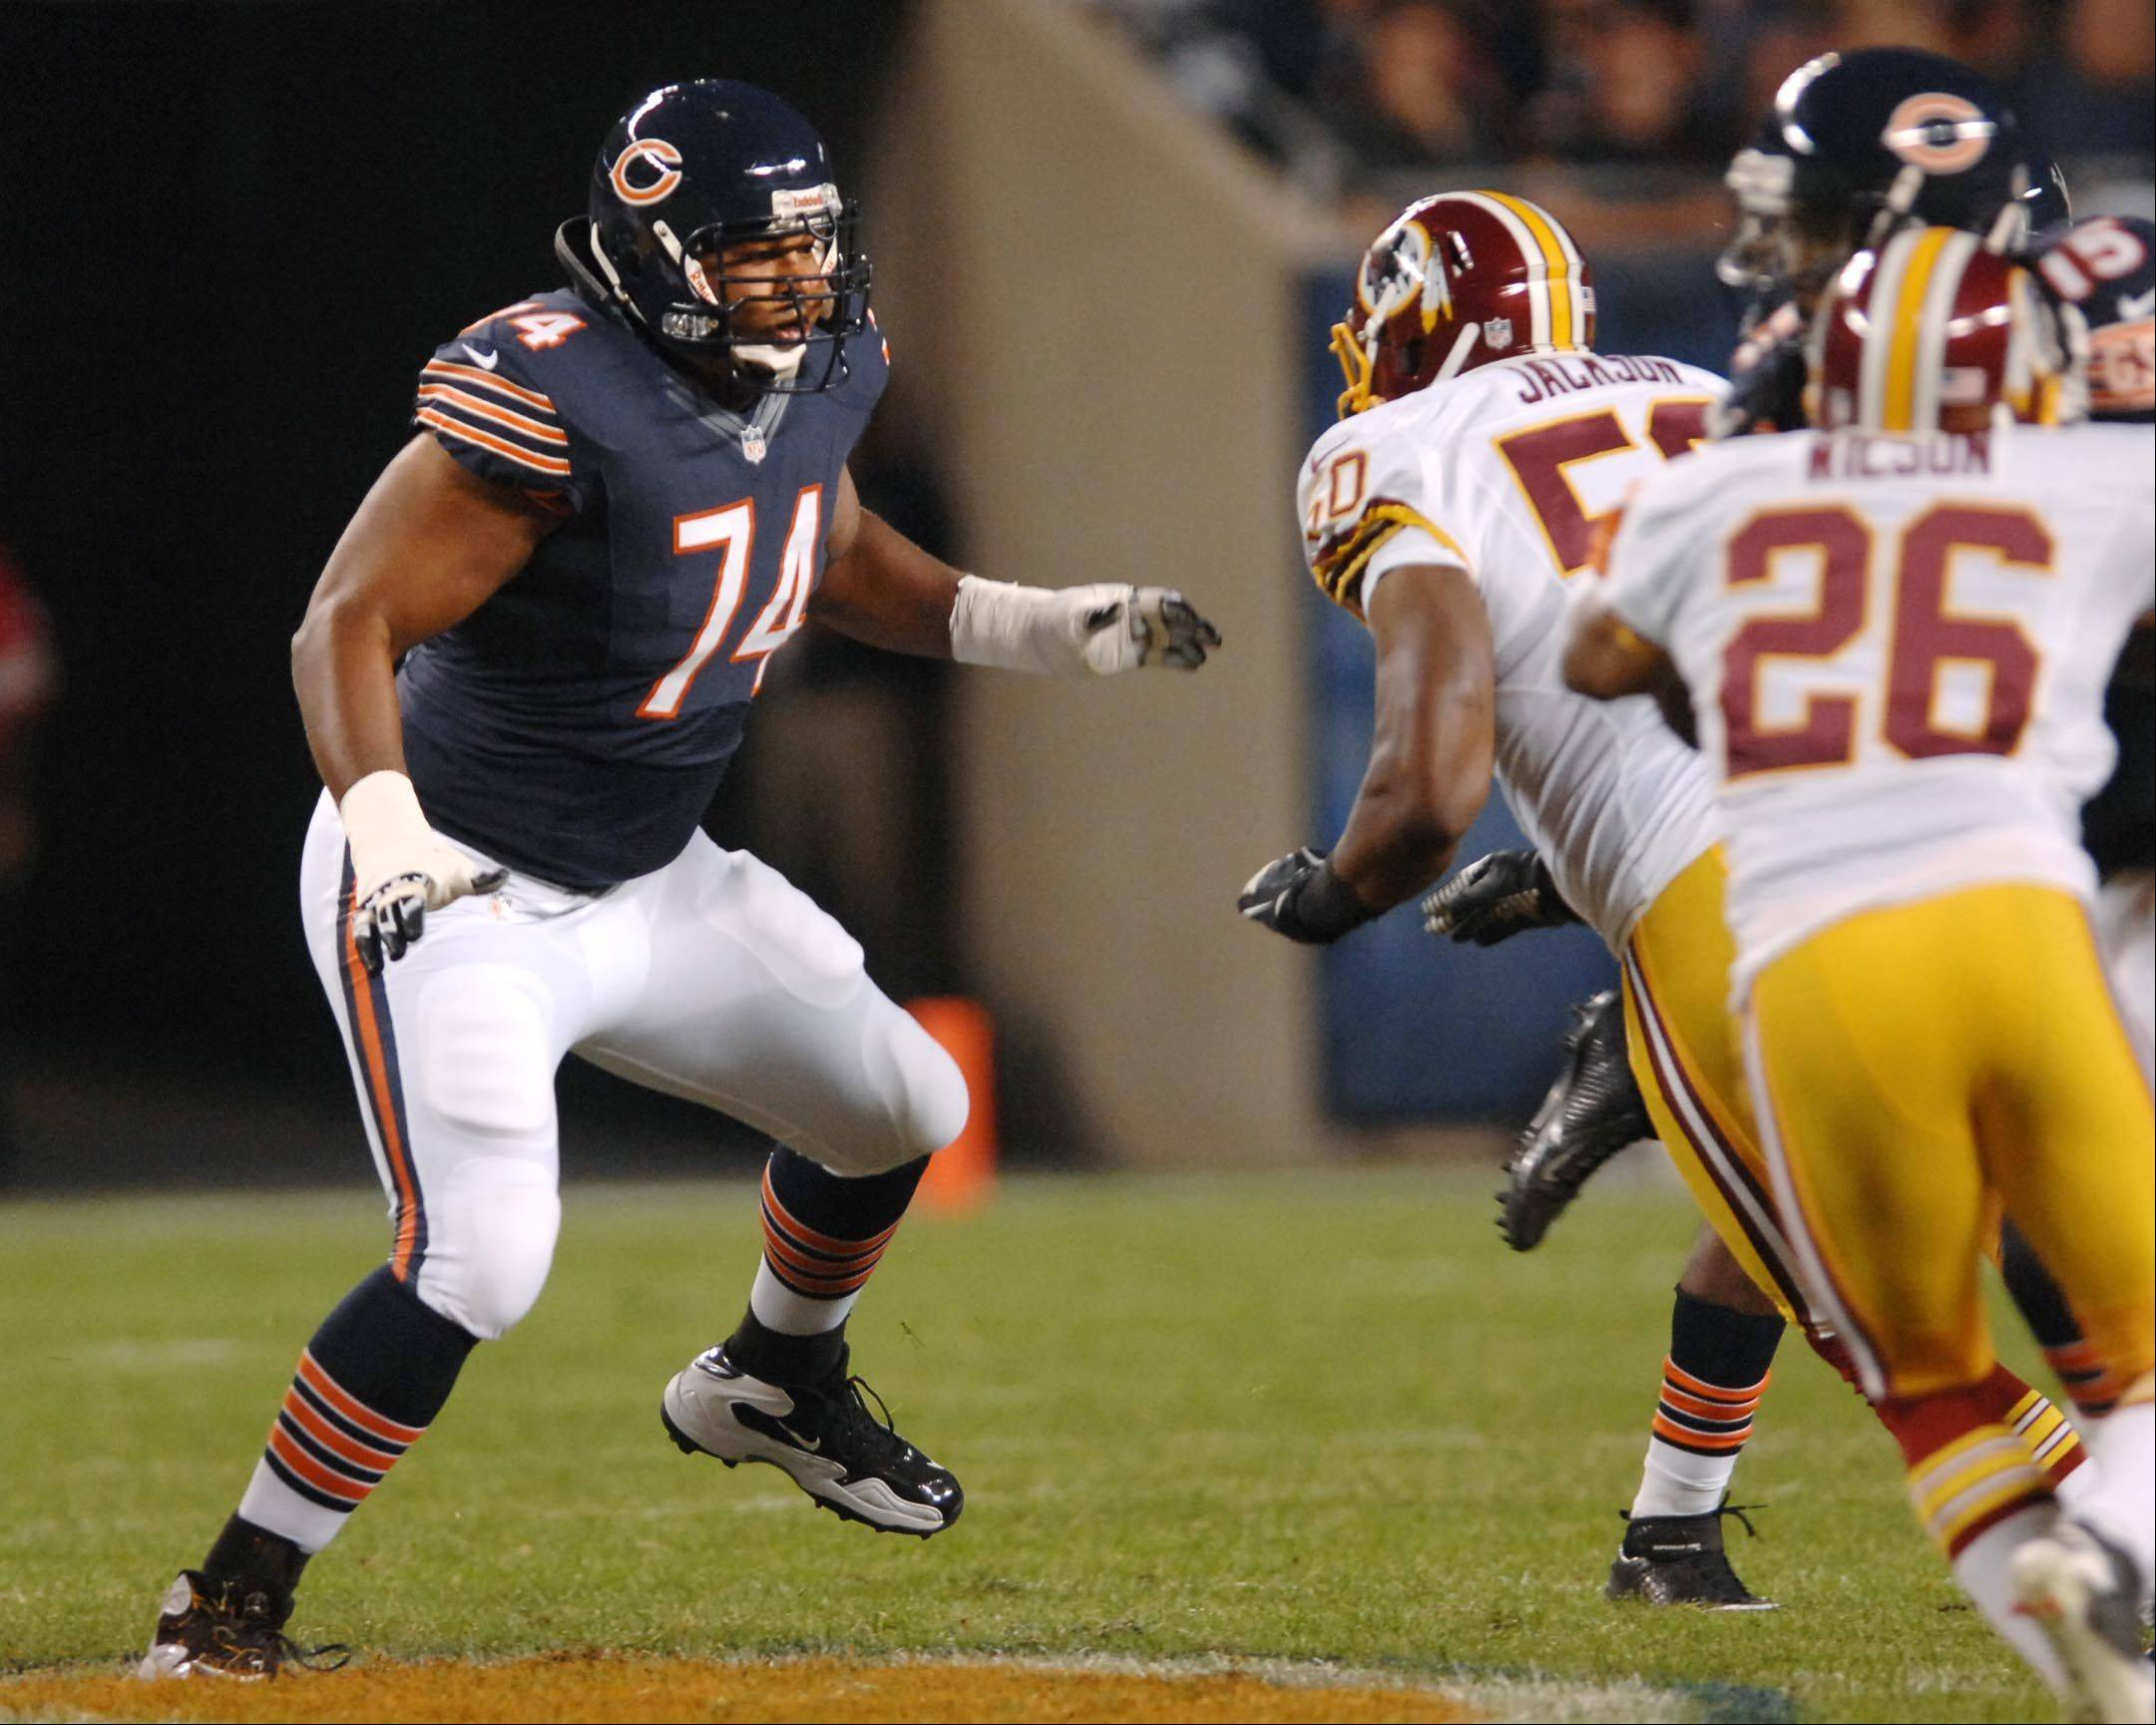 Chicago Bears offensive tackle Chris Williams Saturday against the Washington Redskins in the second preseason game at Soldier Field in Chicago.